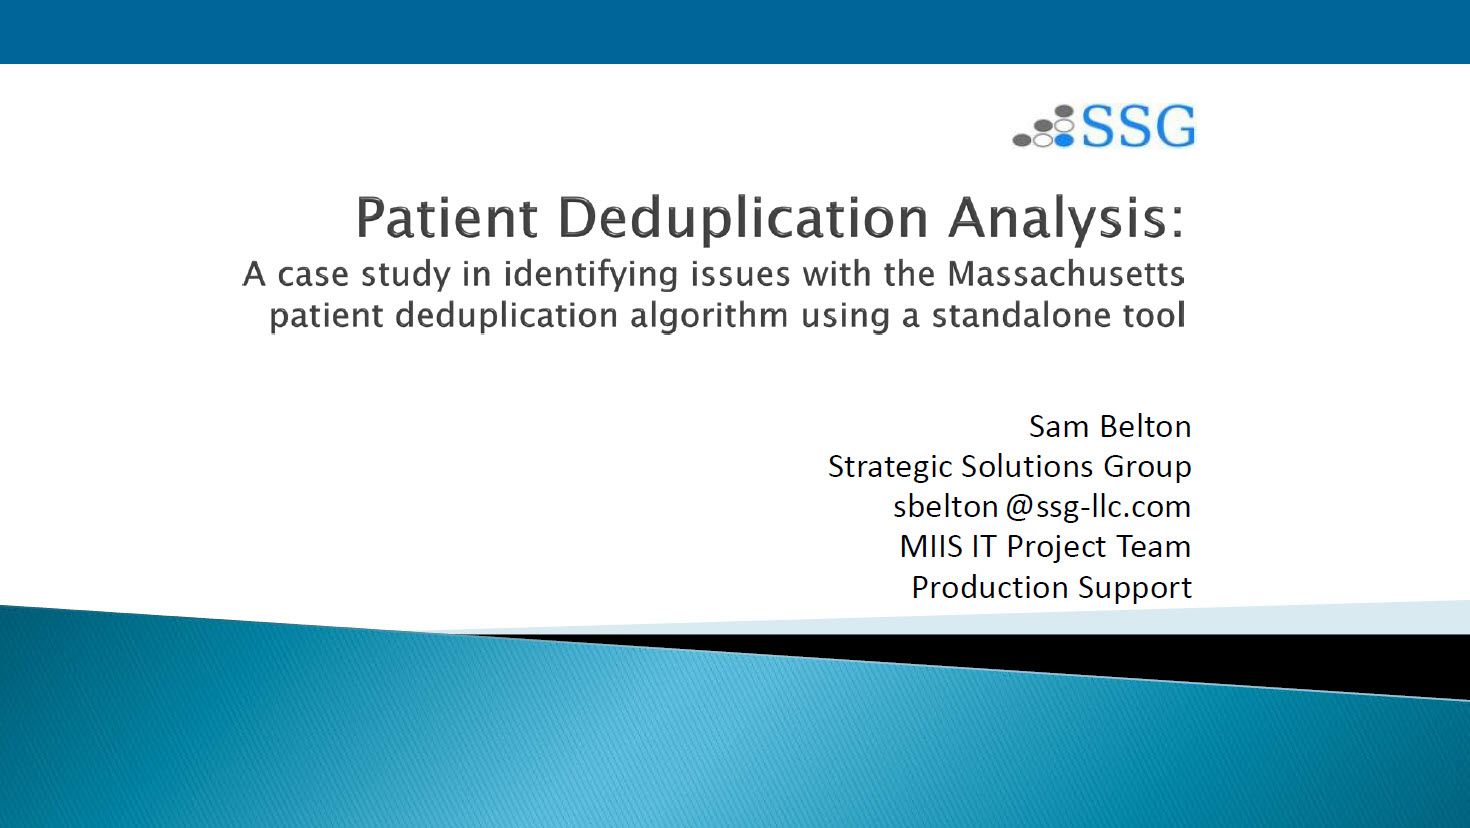 Patient Deduplication in Massachusetts: An Algorithm and a Tool